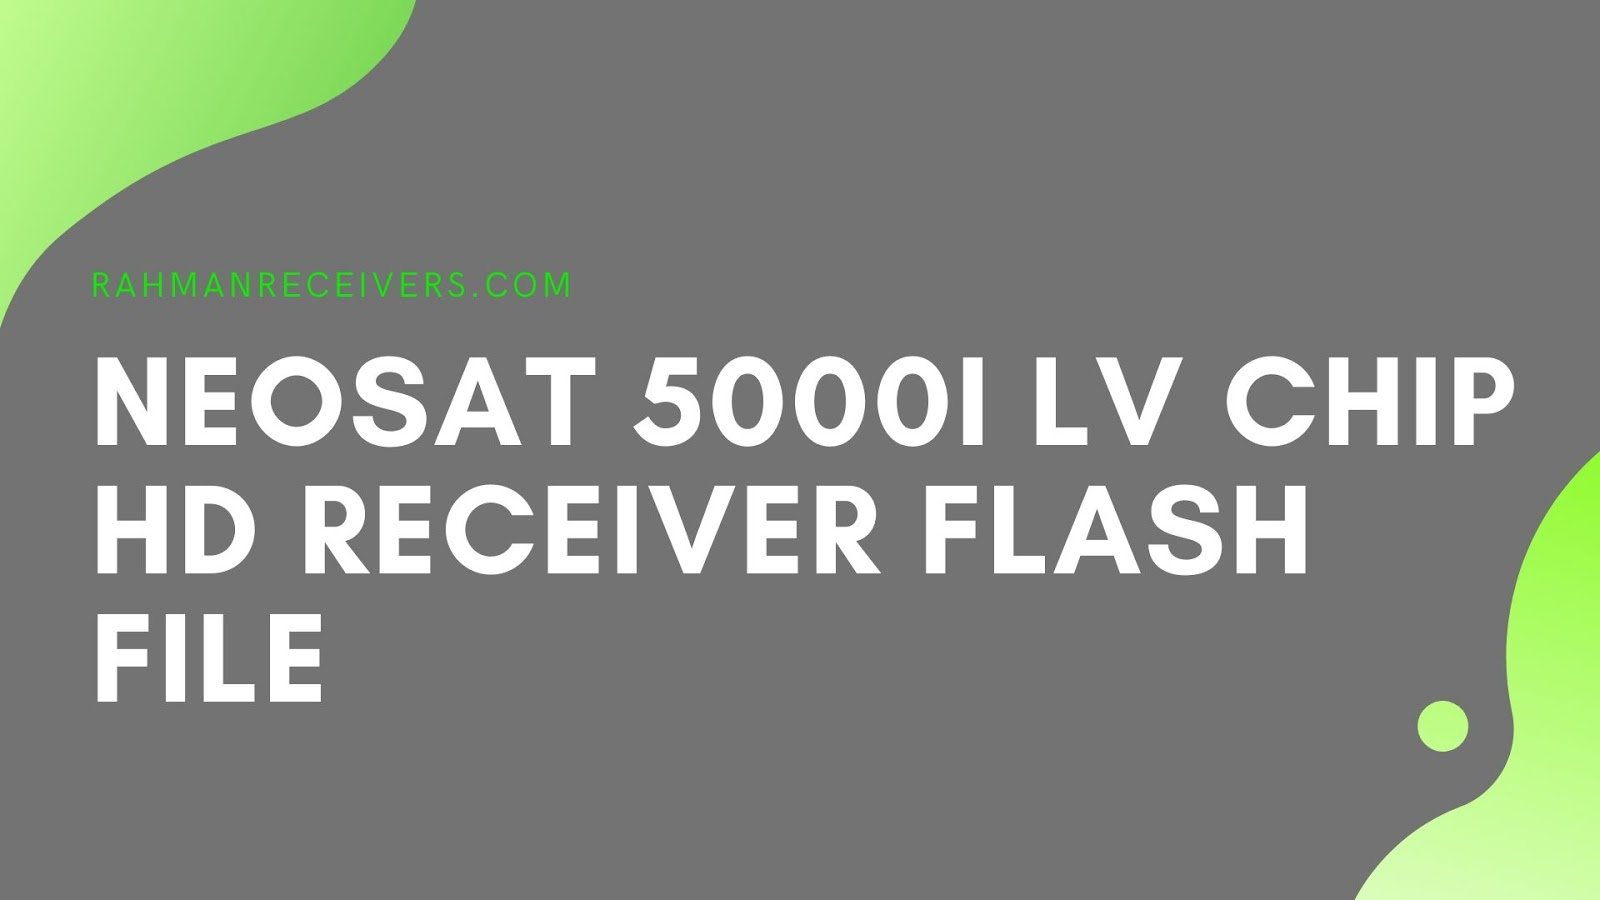 NEOSAT 5000i LV CHIP HD RECEIVER FLASH FILE